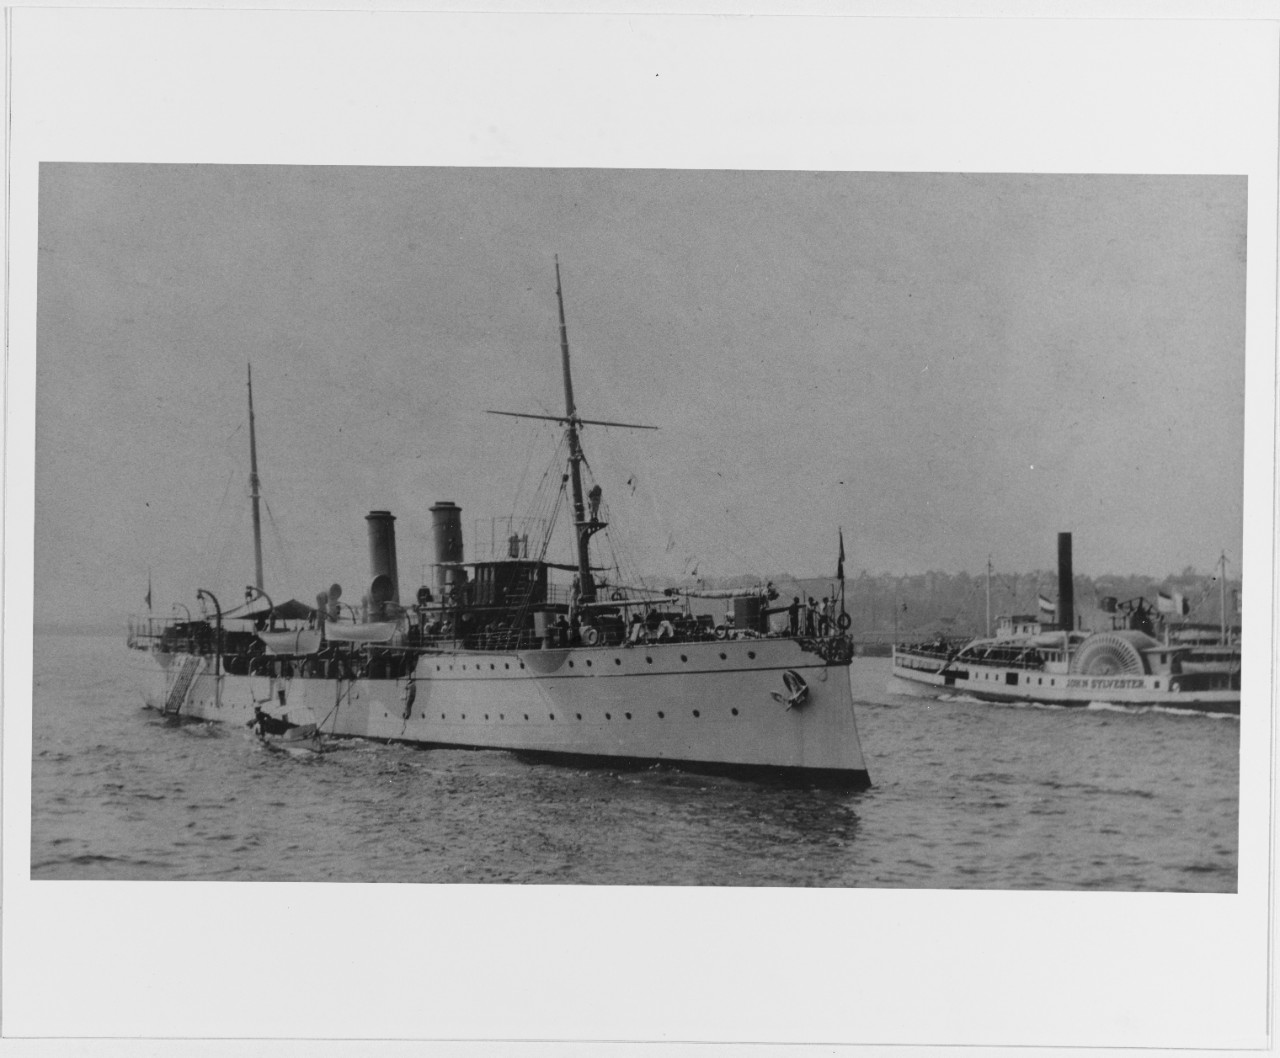 MORALES Mexican Gunboat, 1903